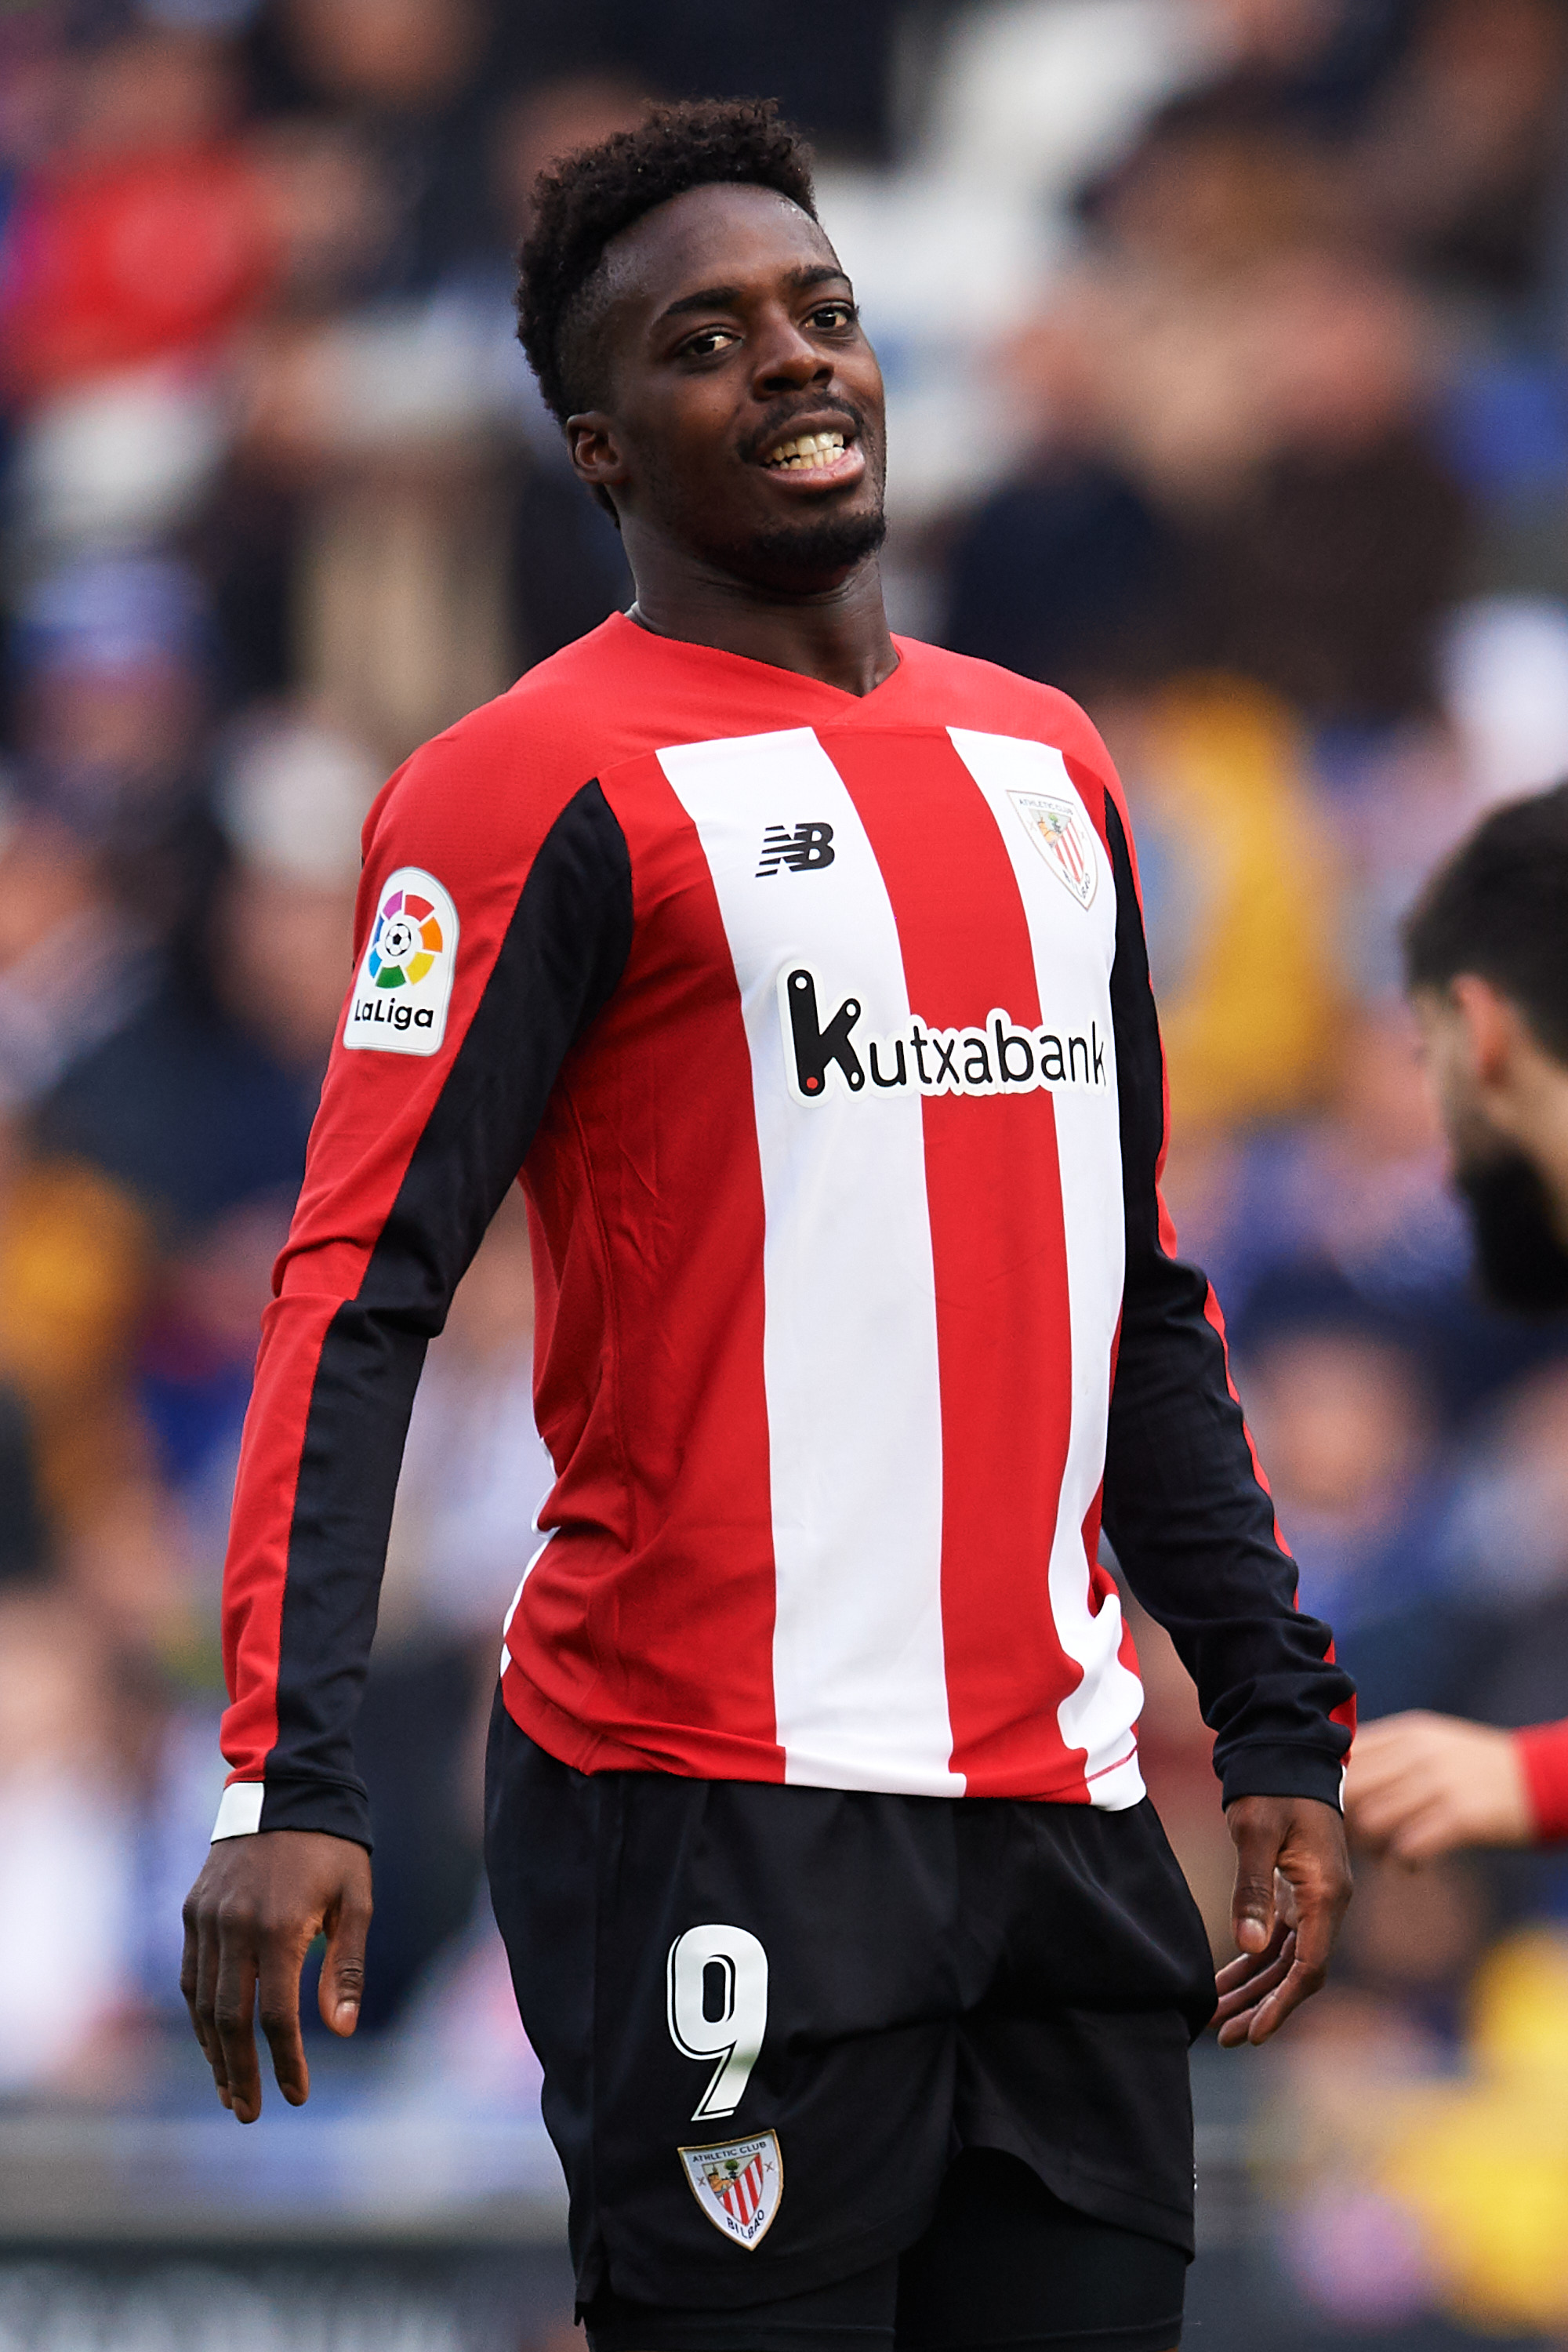 Spanish soccer player Inaki Williams 'sad' after suffering alleged racist abuse from fans in league match